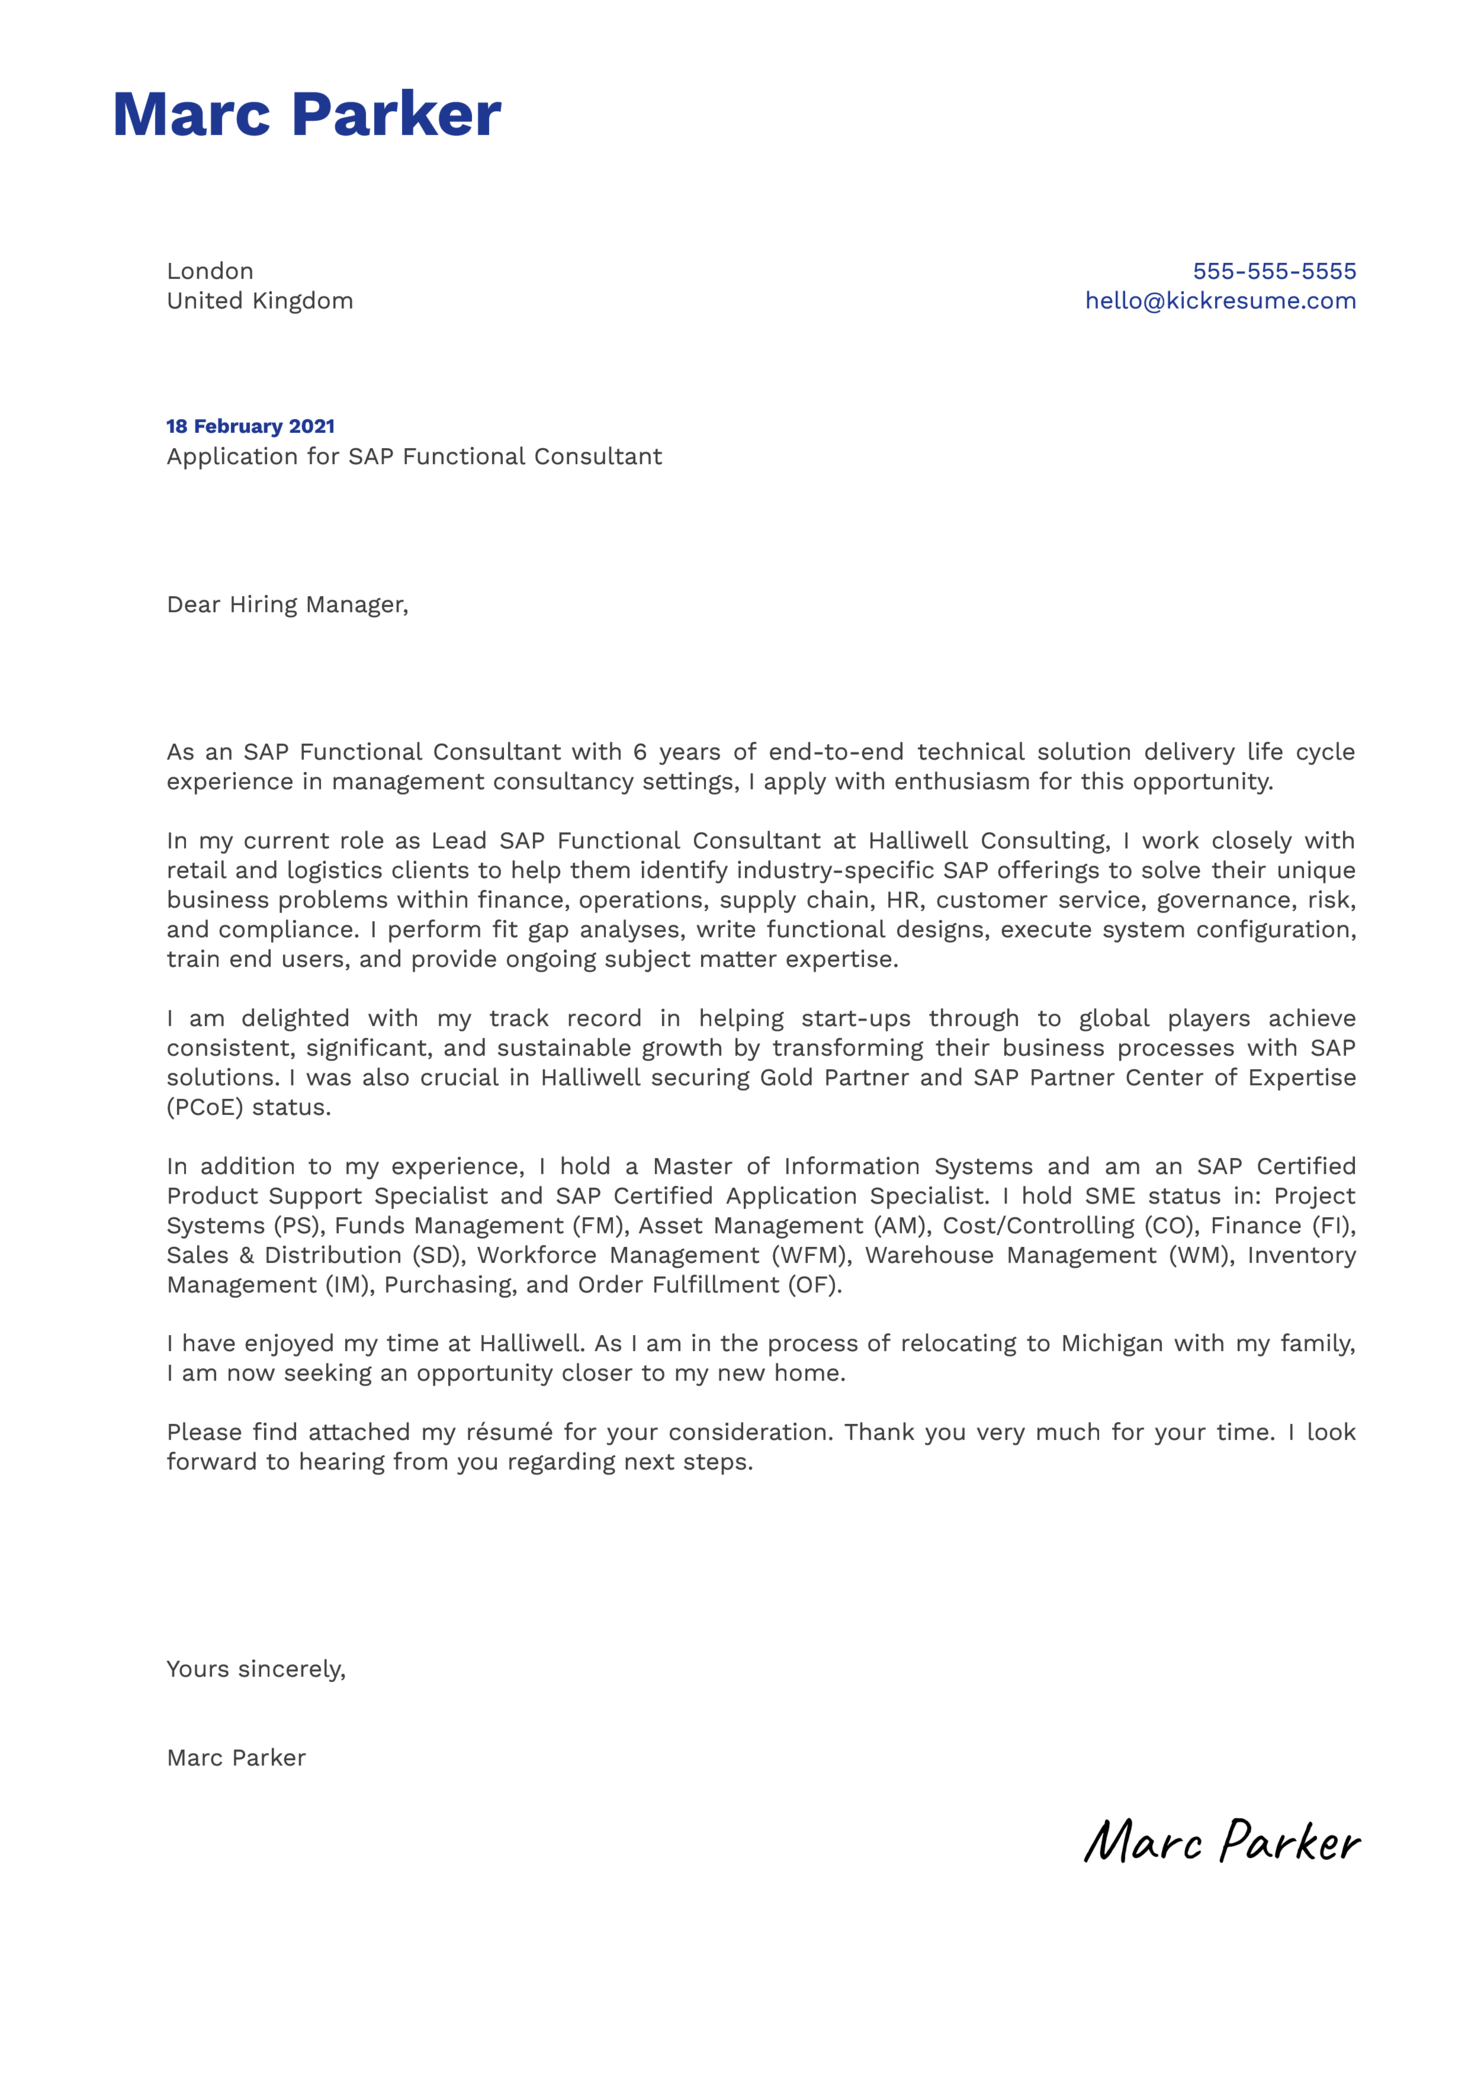 SAP Functional Consultant Cover Letter Example